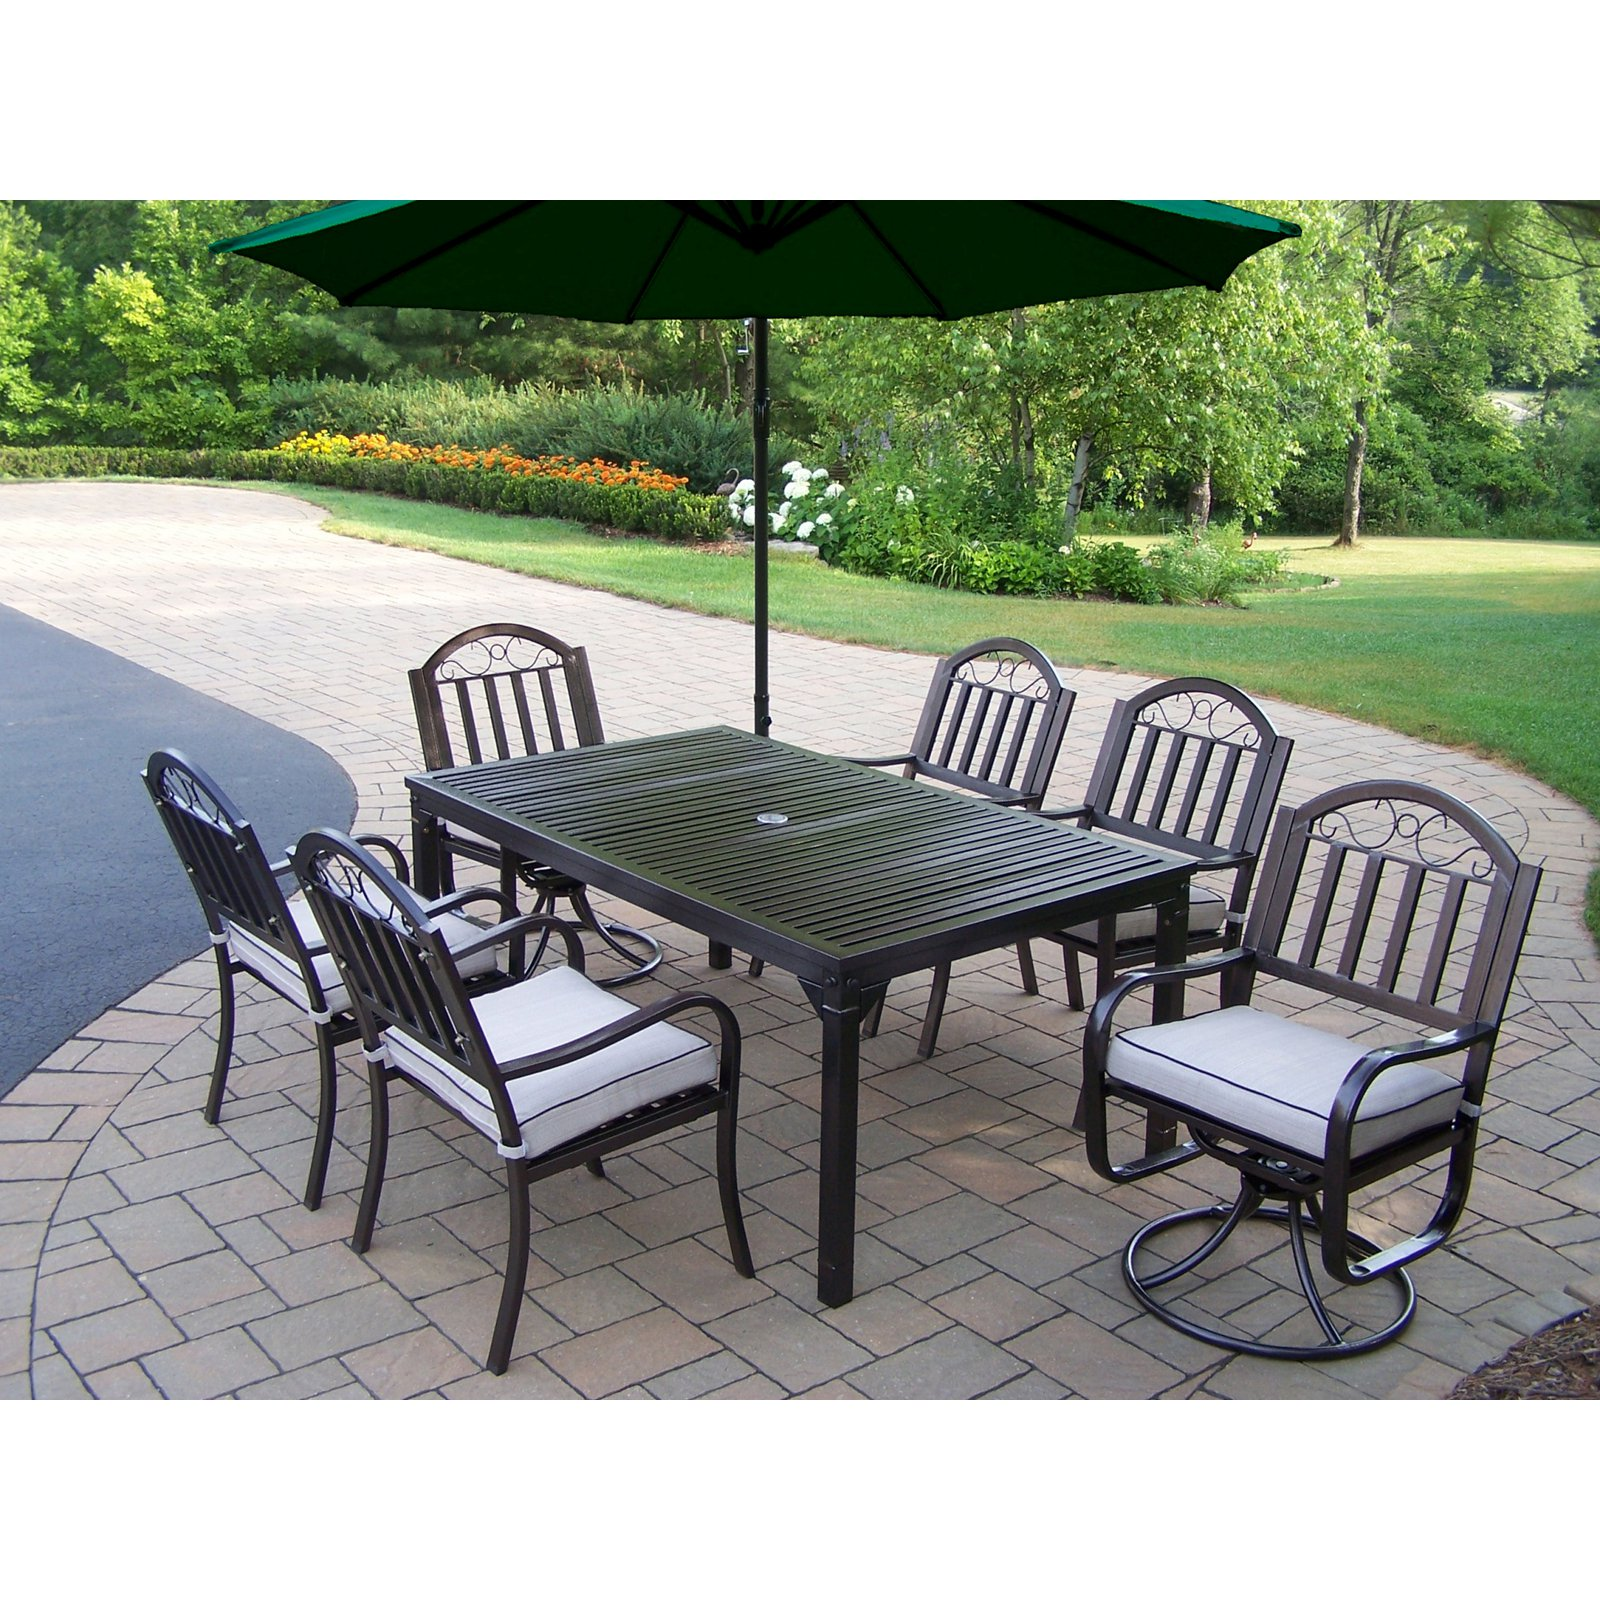 Oakland Rochester 67 x 40 in. Patio Dining Set with 2 Swi...